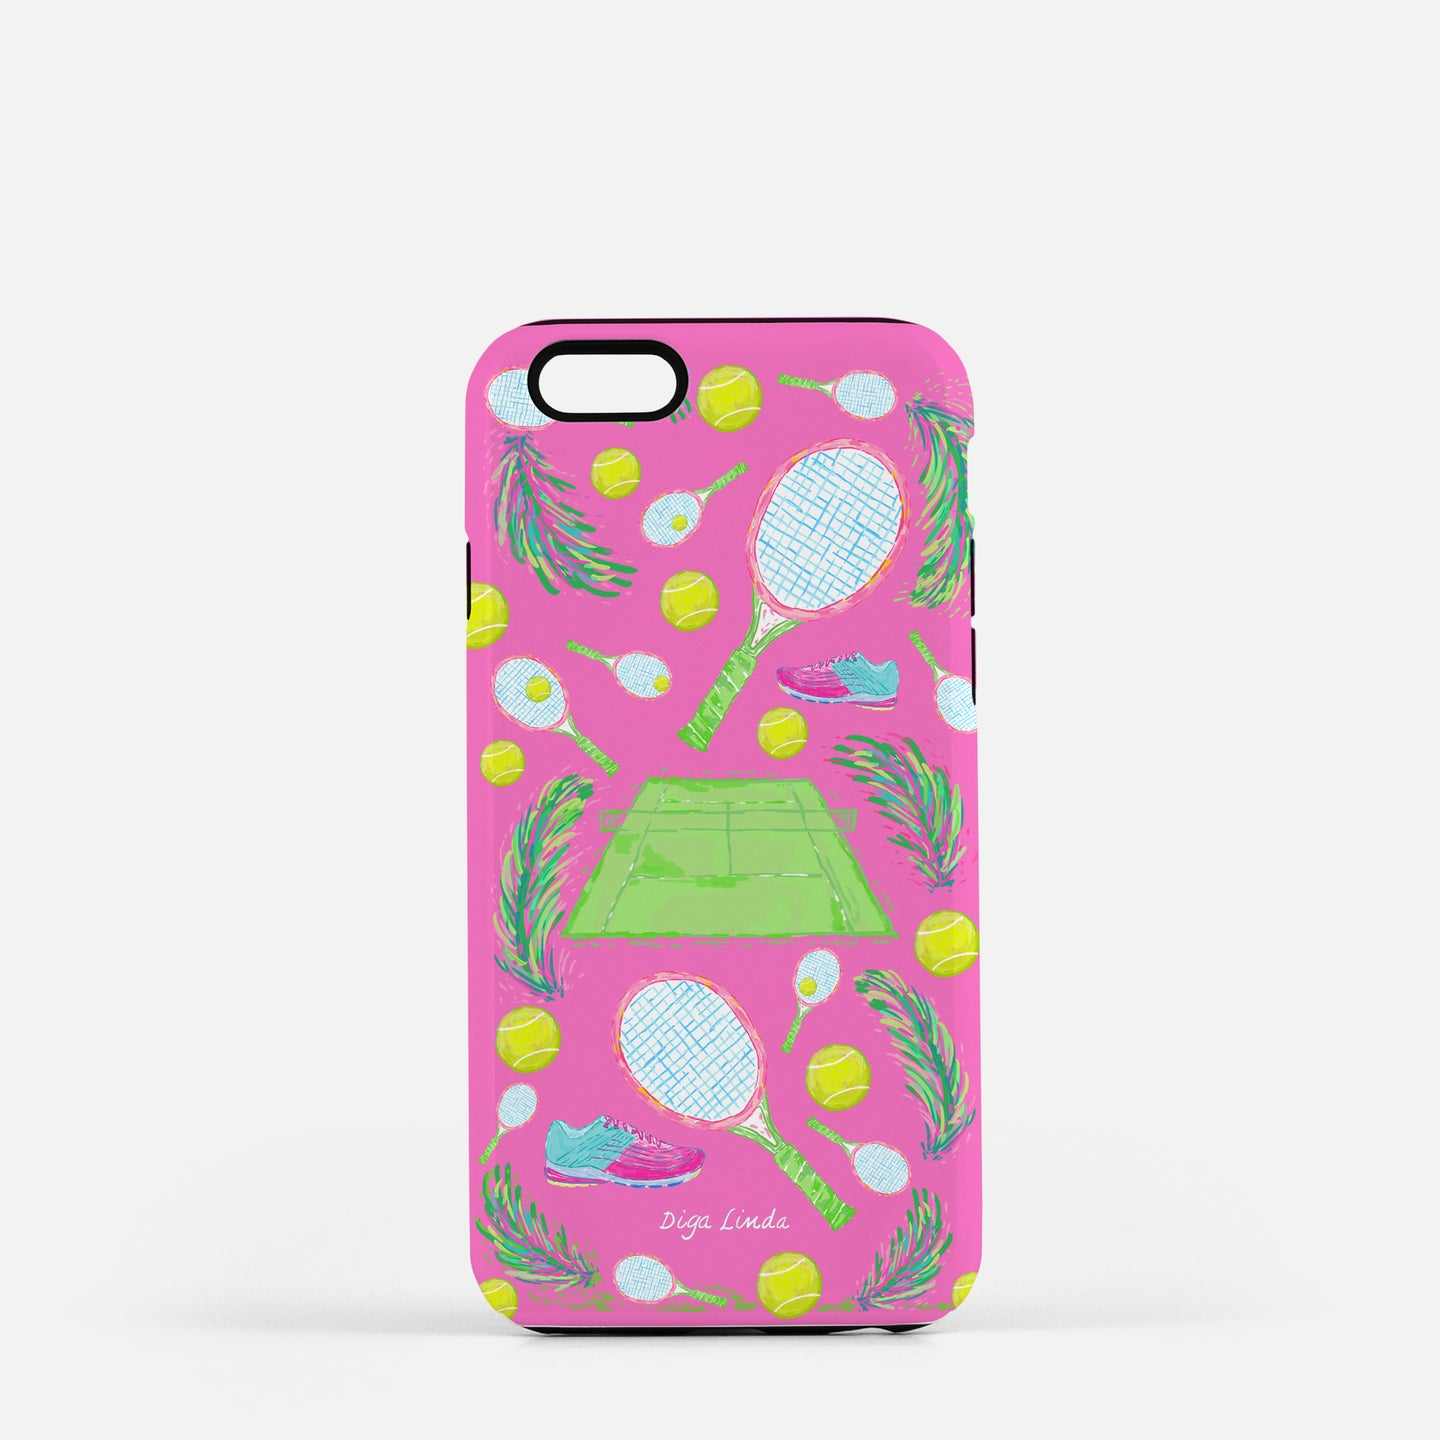 Tough Phone Case in the Tennis Rose Print - Diga Linda